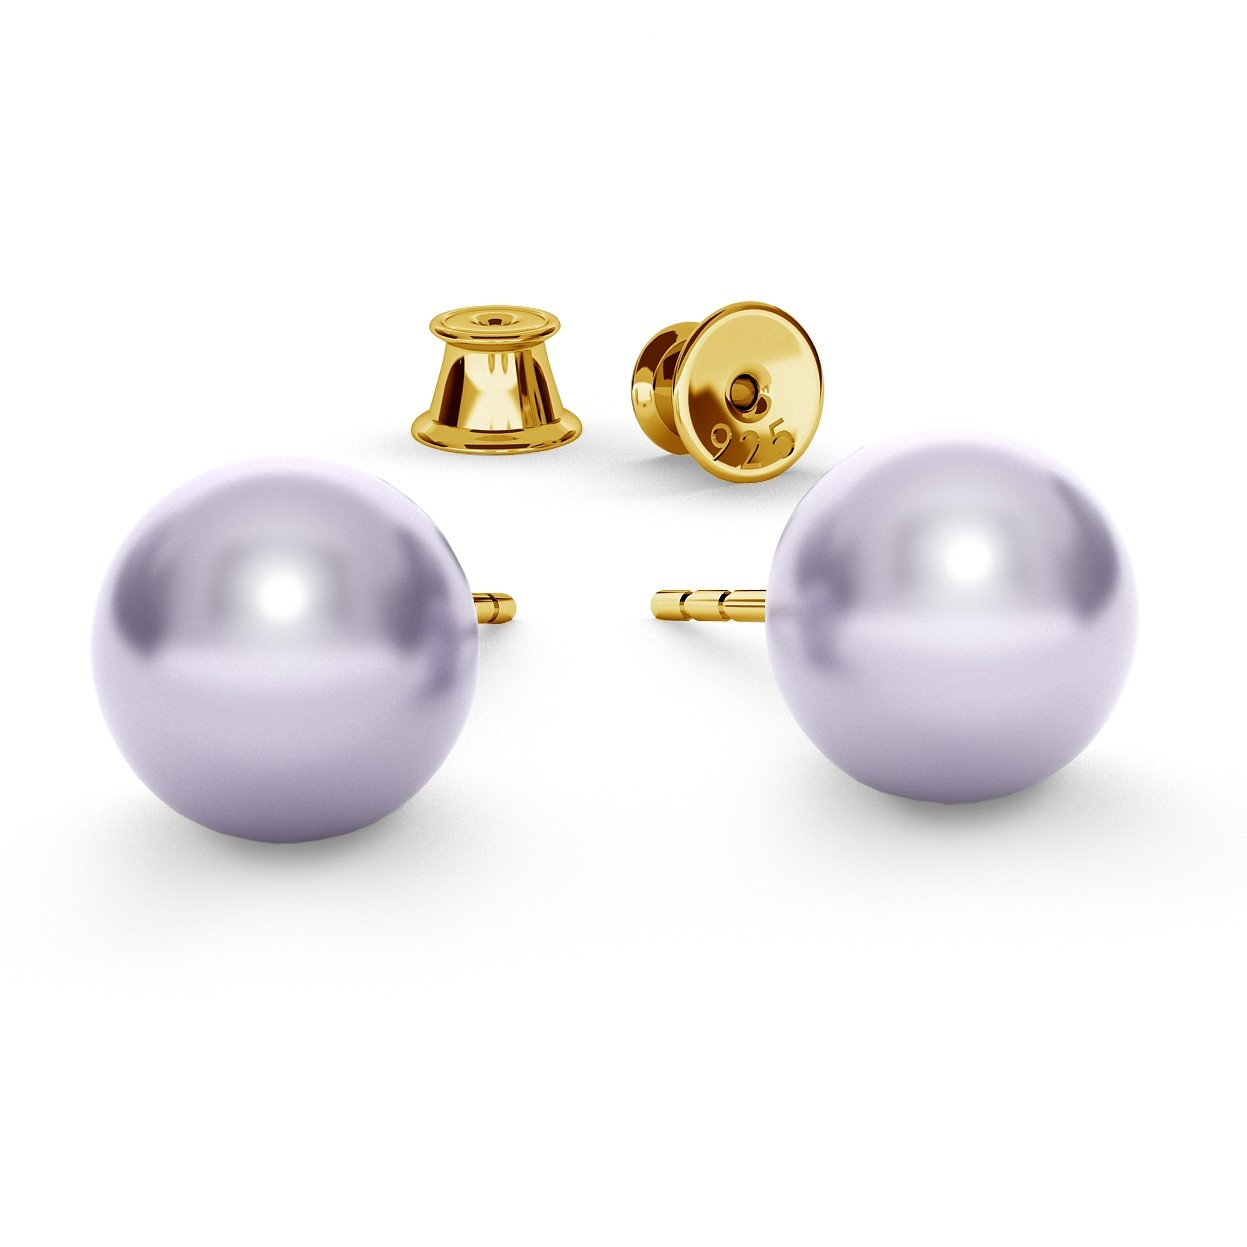 PEARL EARRINGS, SWAROVSKI 5810 MM 8, STERLING SILVER (925) RHODIUM OR GOLD PLATED